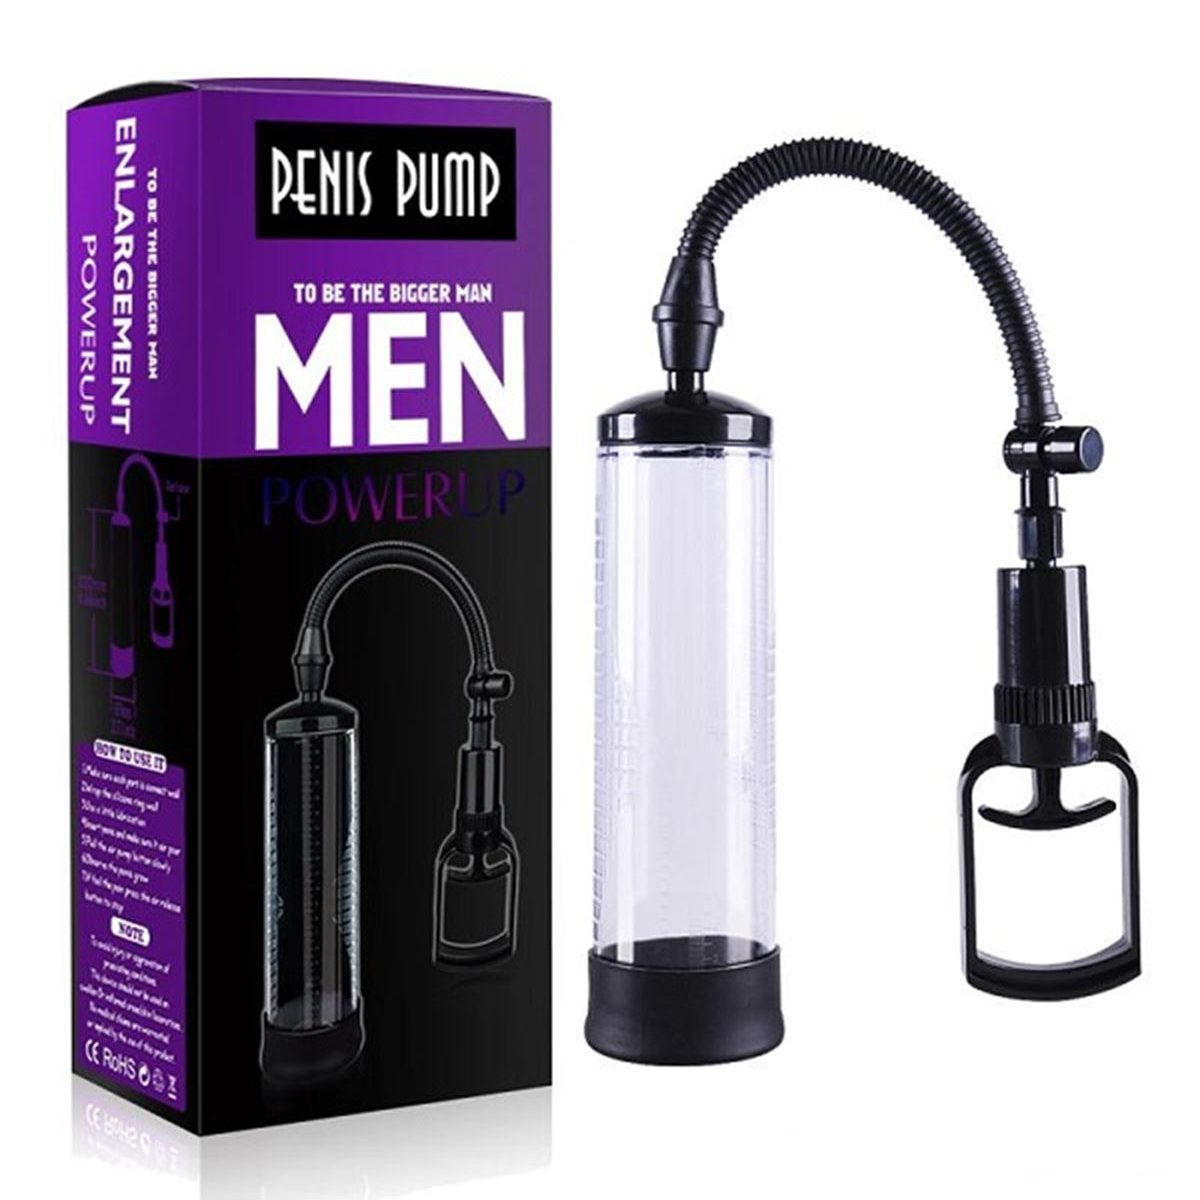 Men Power Pump Price In Pakistan